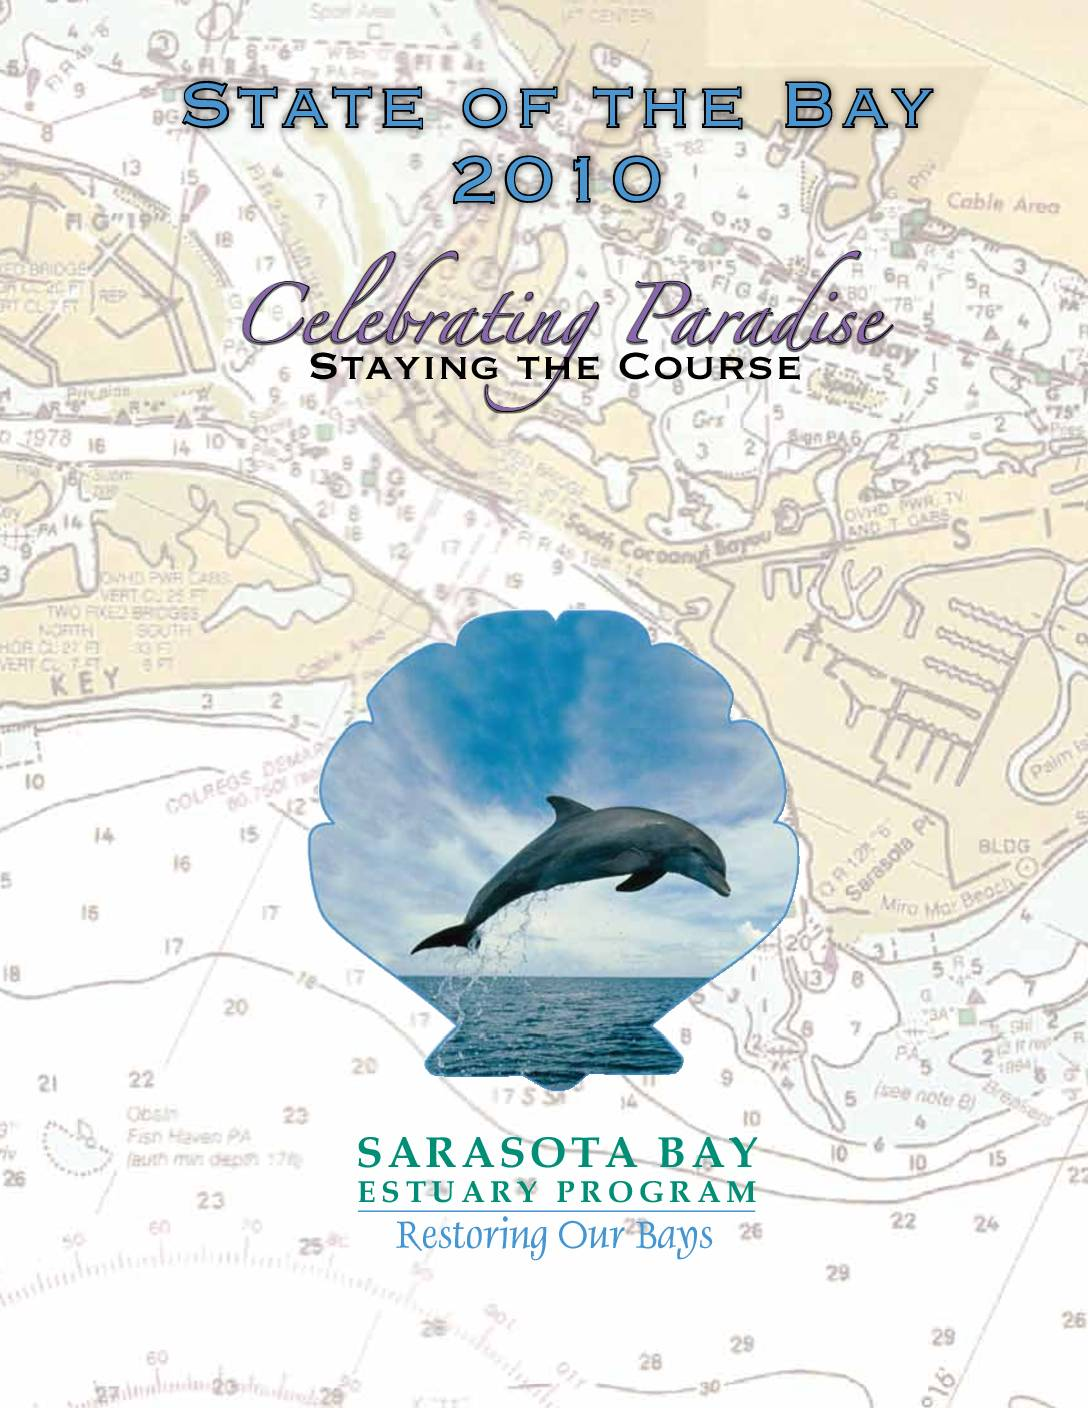 Click to read the 2010 State of the Bay Report for Sarasota Bay.